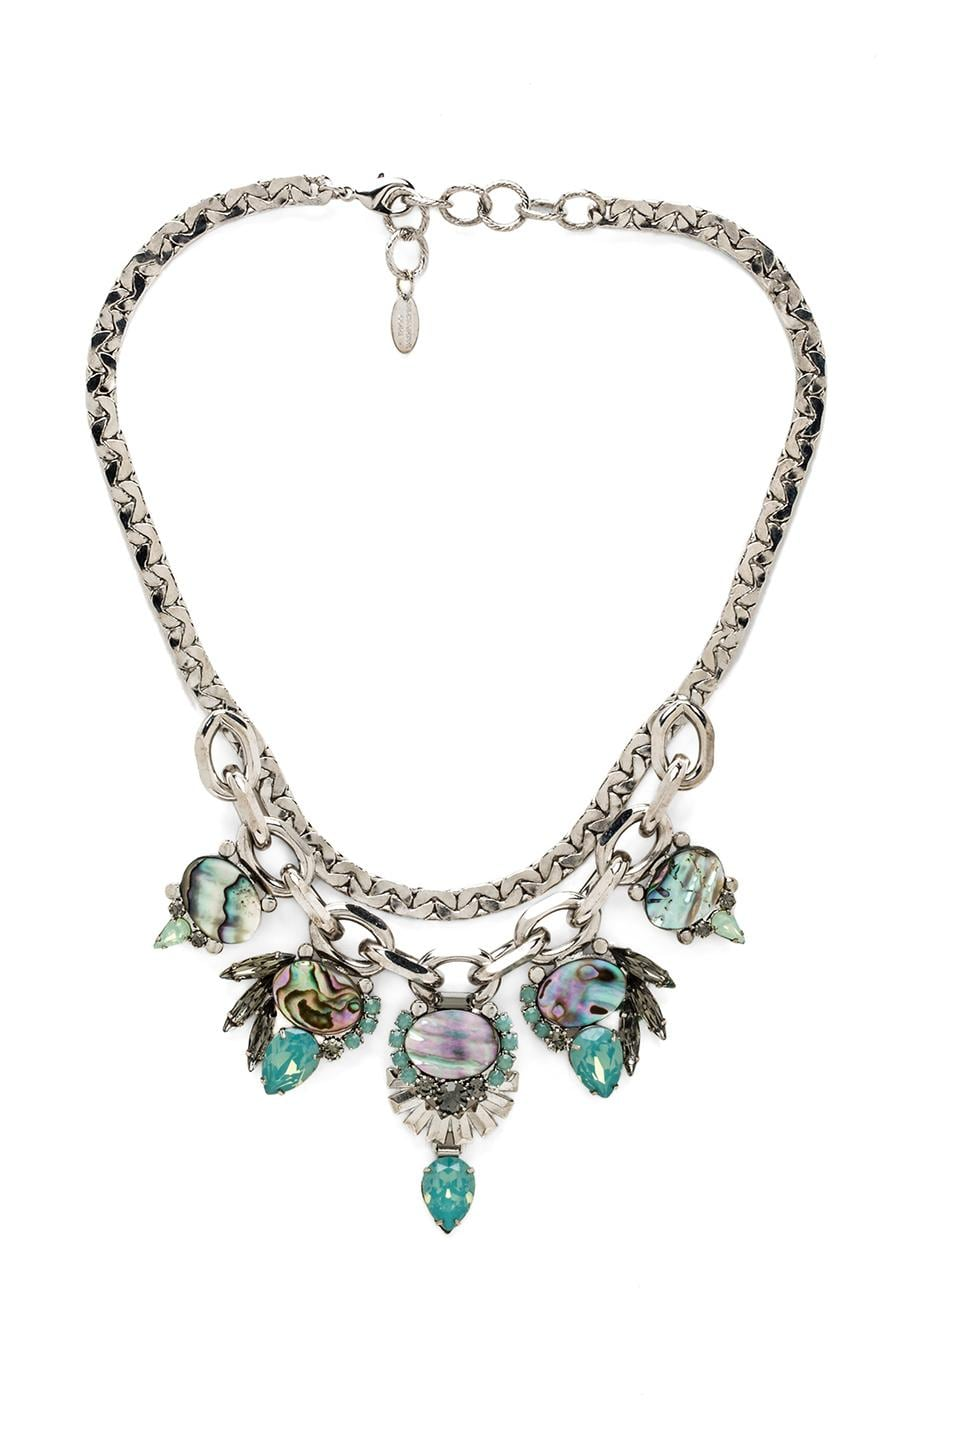 Elizabeth Cole Bib Necklace in Mother of Pearl